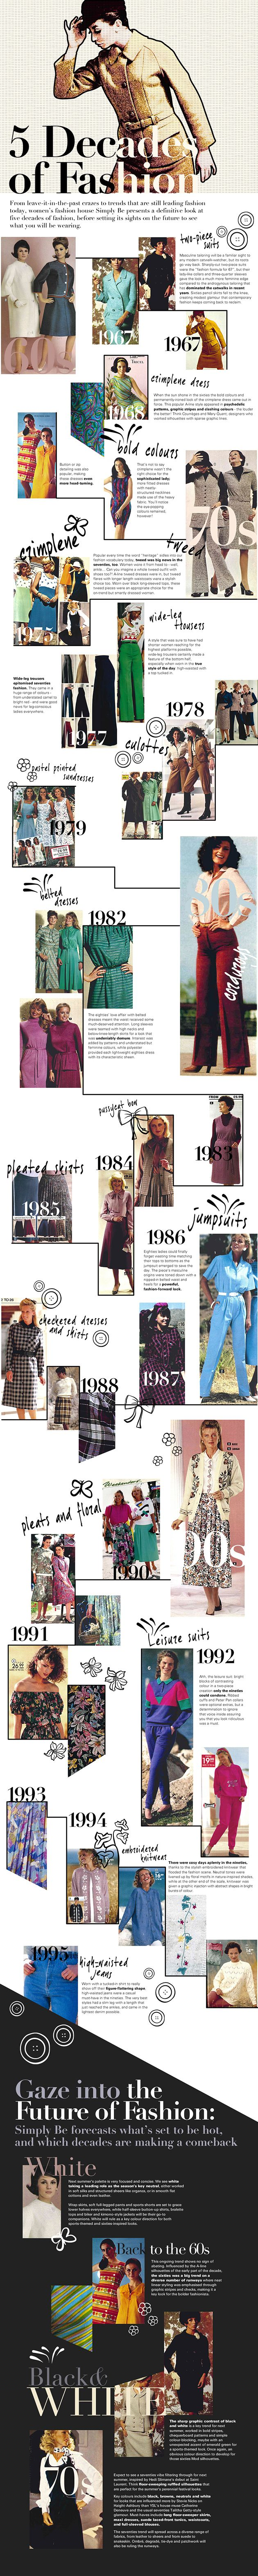 From leave-it-in-the-past crazes to trends that are still leading fashion today, womens fashion house Simply Be presents a definitive look at five de